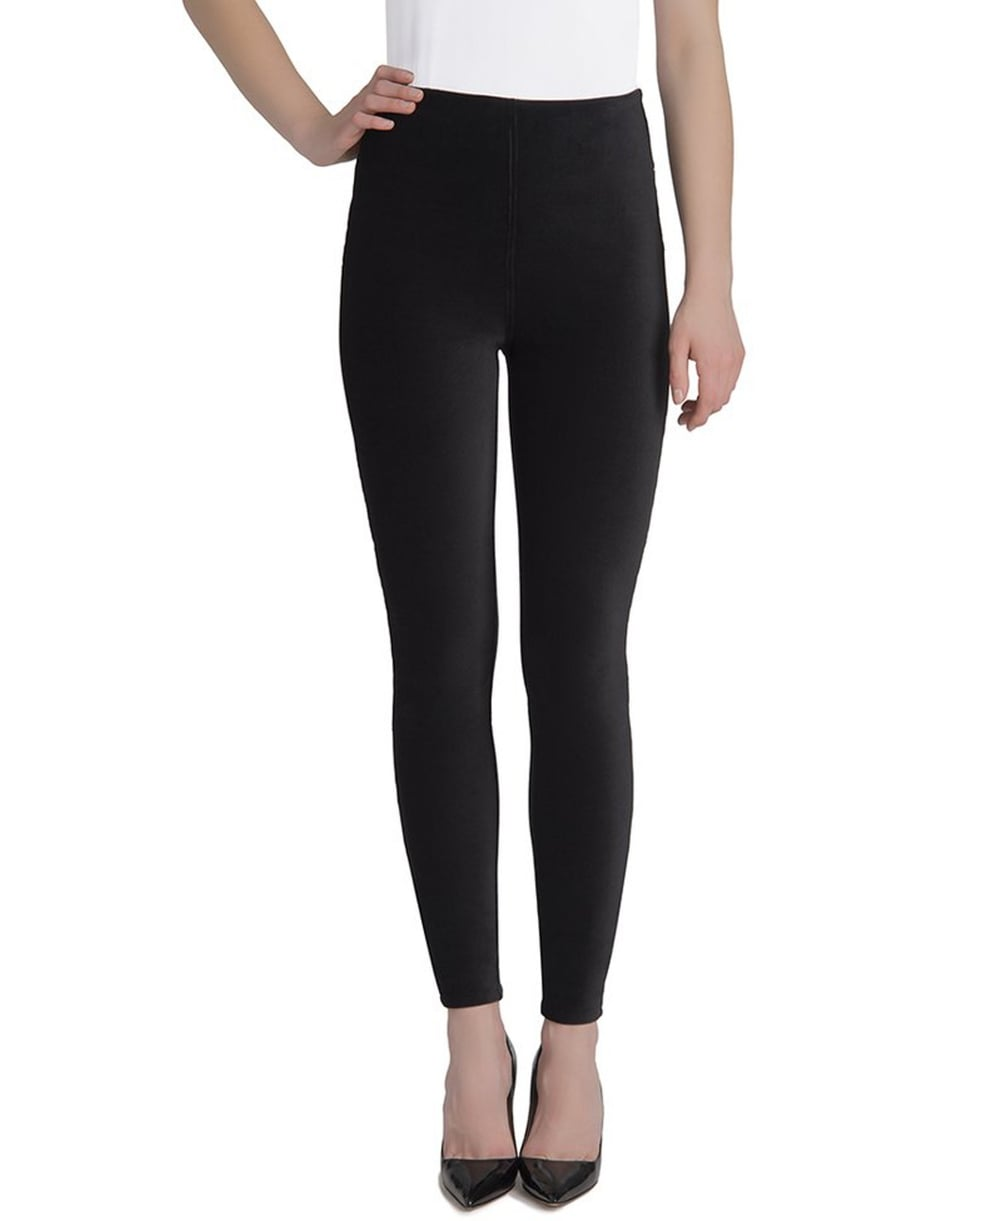 amazing price purchase cheap shop for genuine Fine Needle Cord Leggings